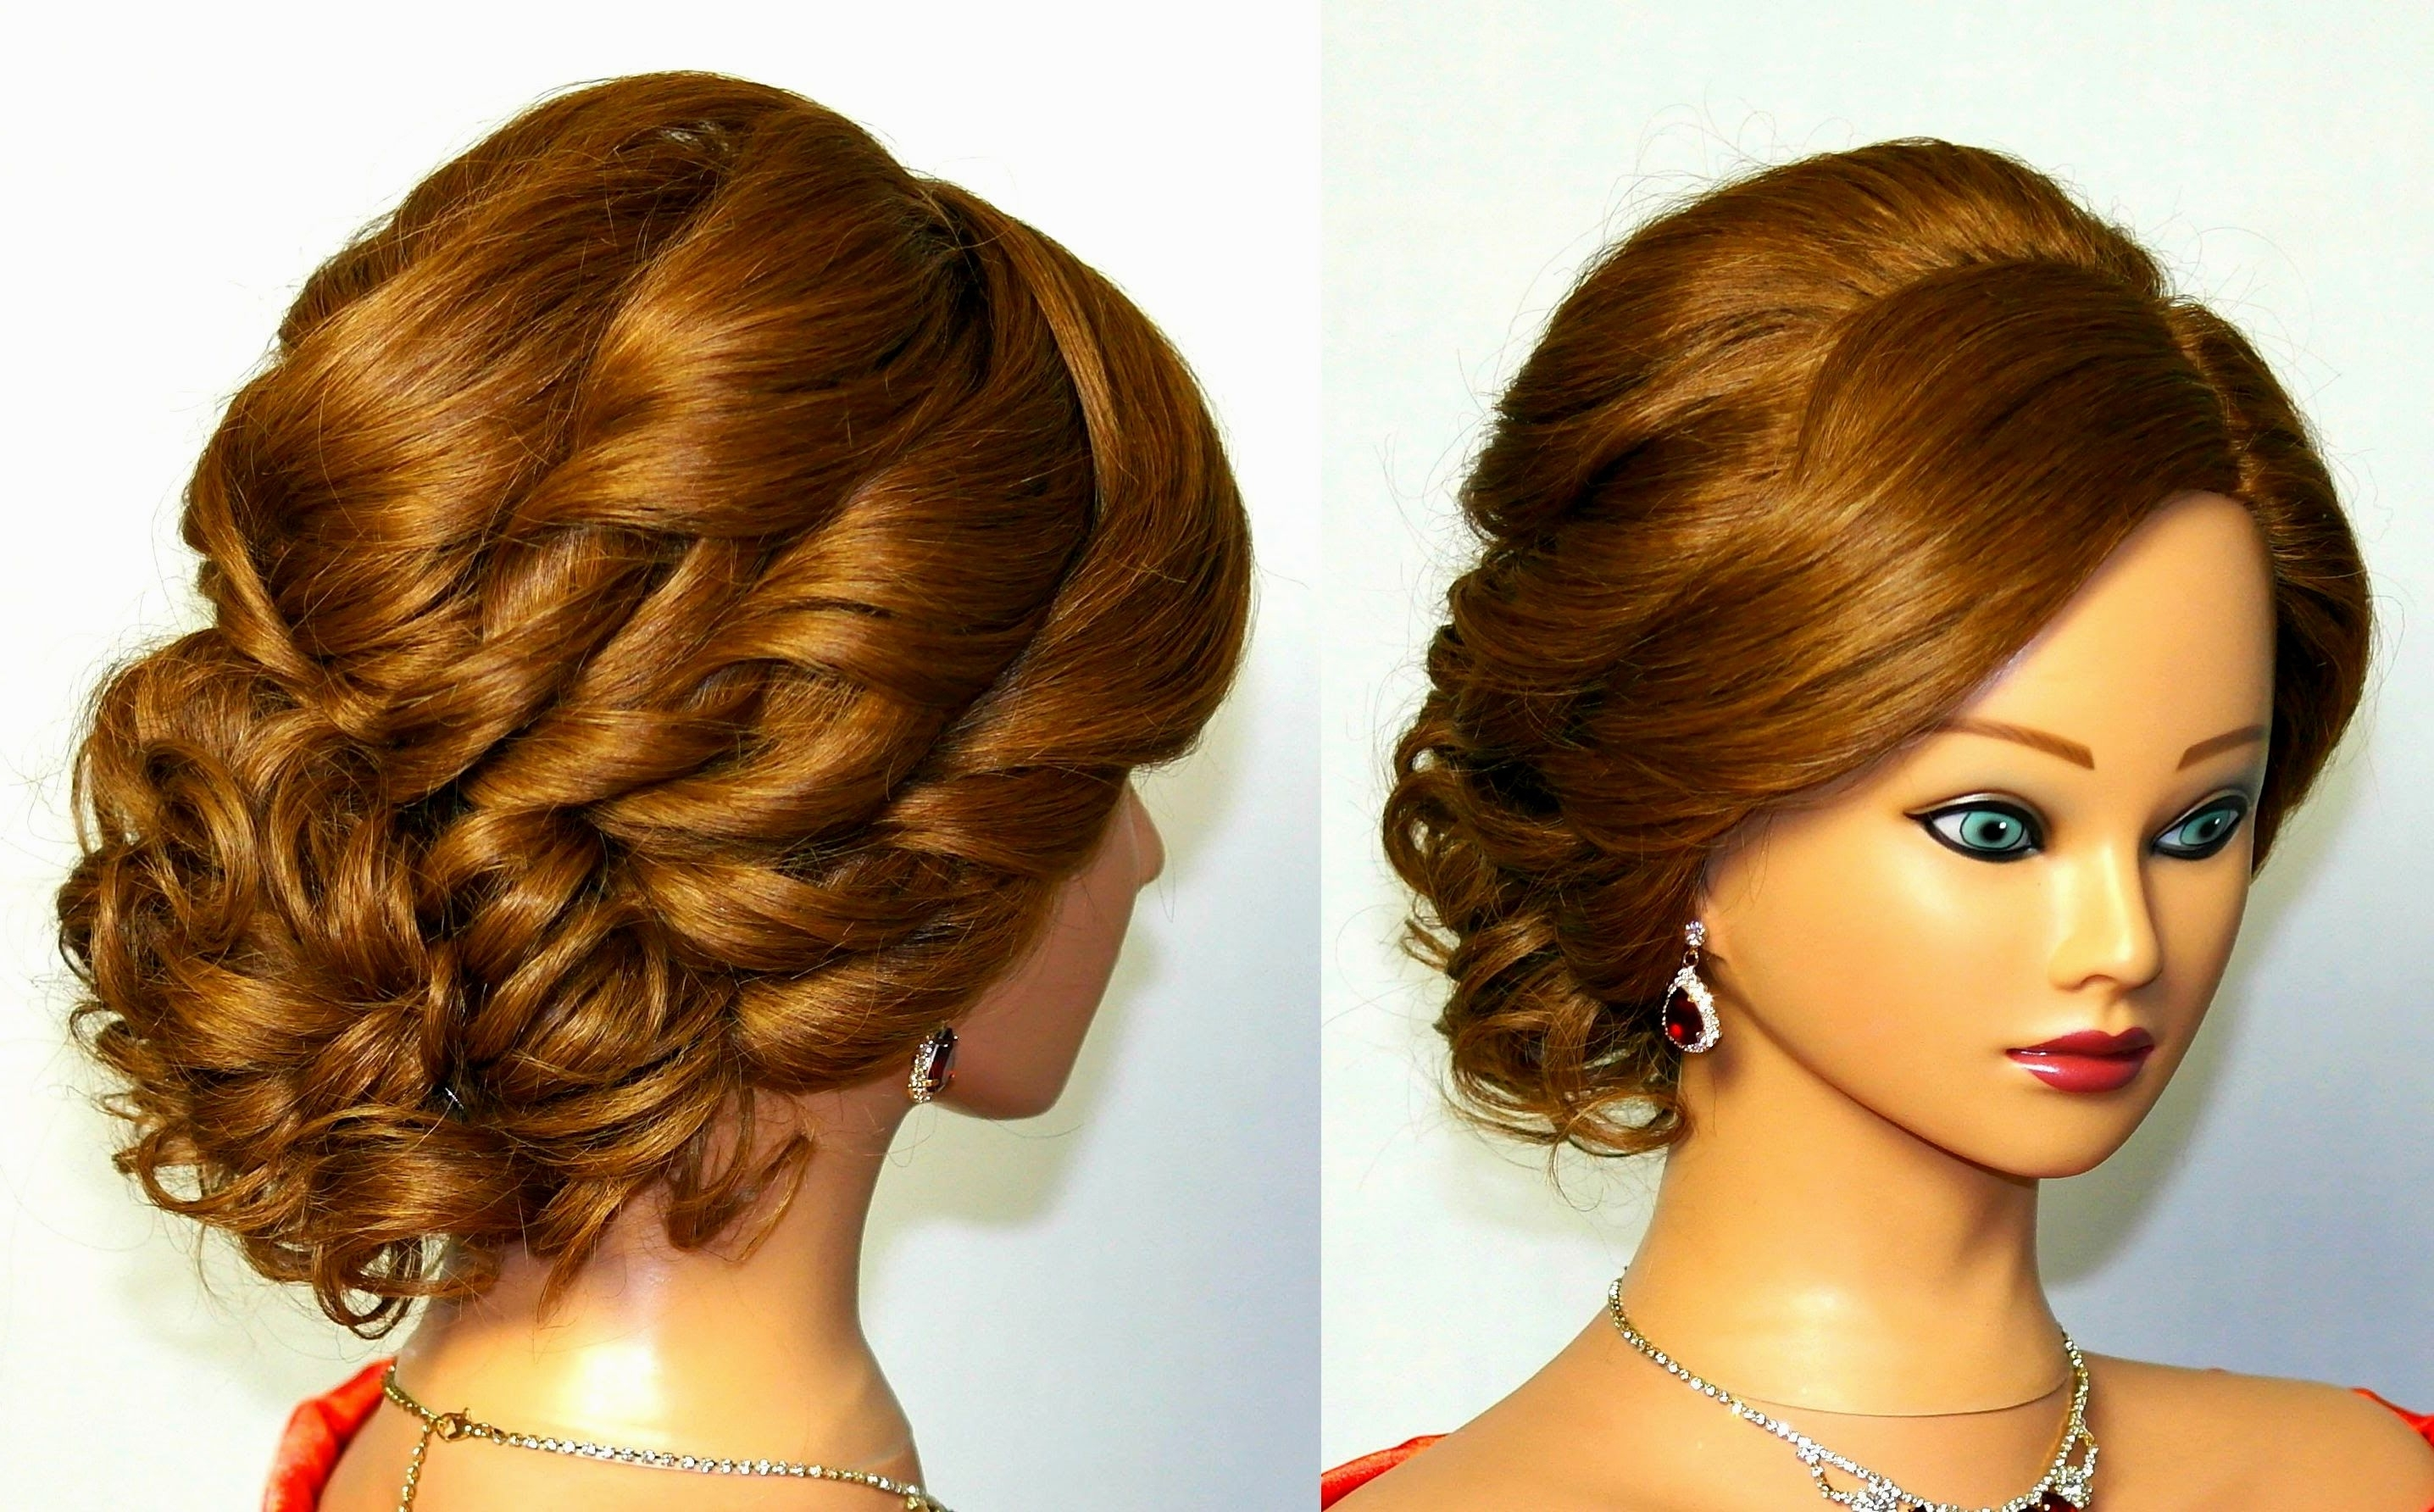 Bridesmaid Hairstyles Curly Hair Updo Hairstyle Pop Ideas Of Curly Within Curly Hair Updo Hairstyles (View 13 of 15)